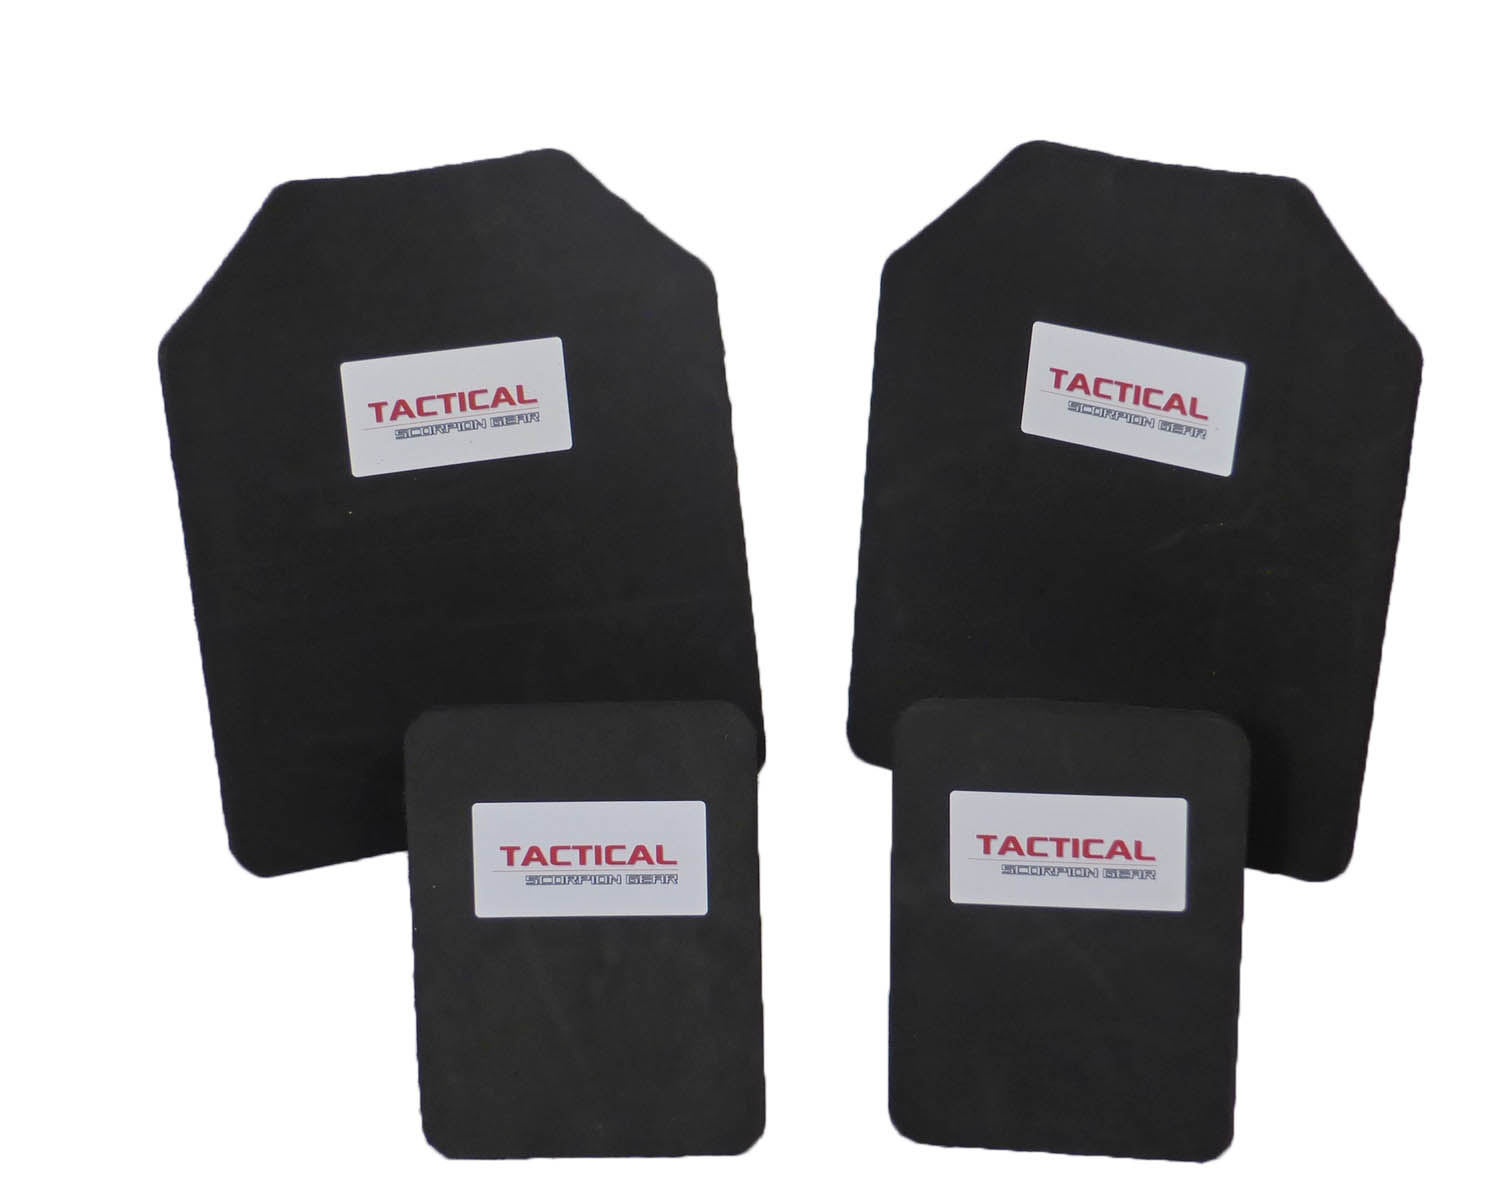 Tactical Scorpion 10mm Paintball Airsoft Pair 10x12+6x8 Protective Vest Plates by Tactical Scorpion Gear